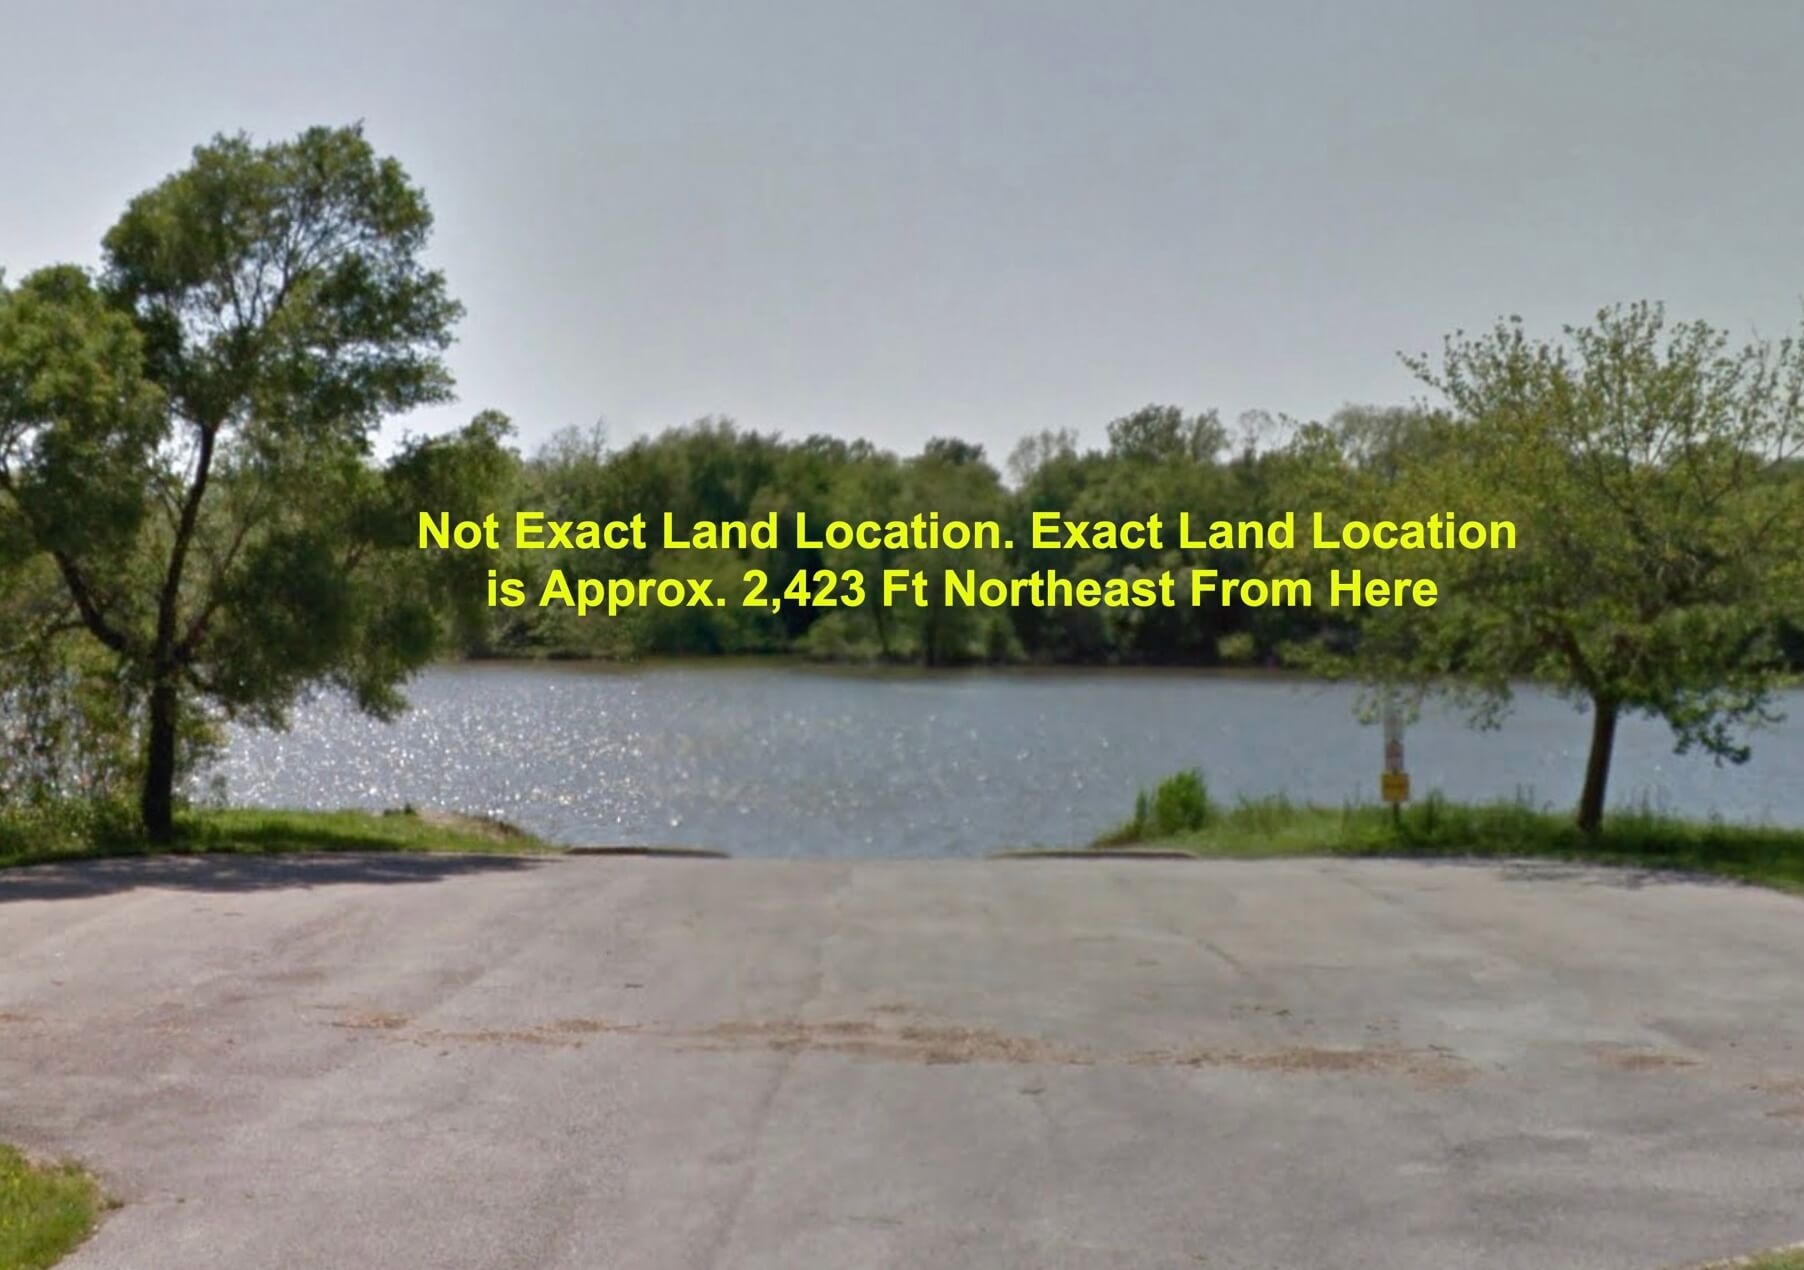 Lots Cheap Land for Sale Near Me. US Cheap Land for Sale Near Me Online.